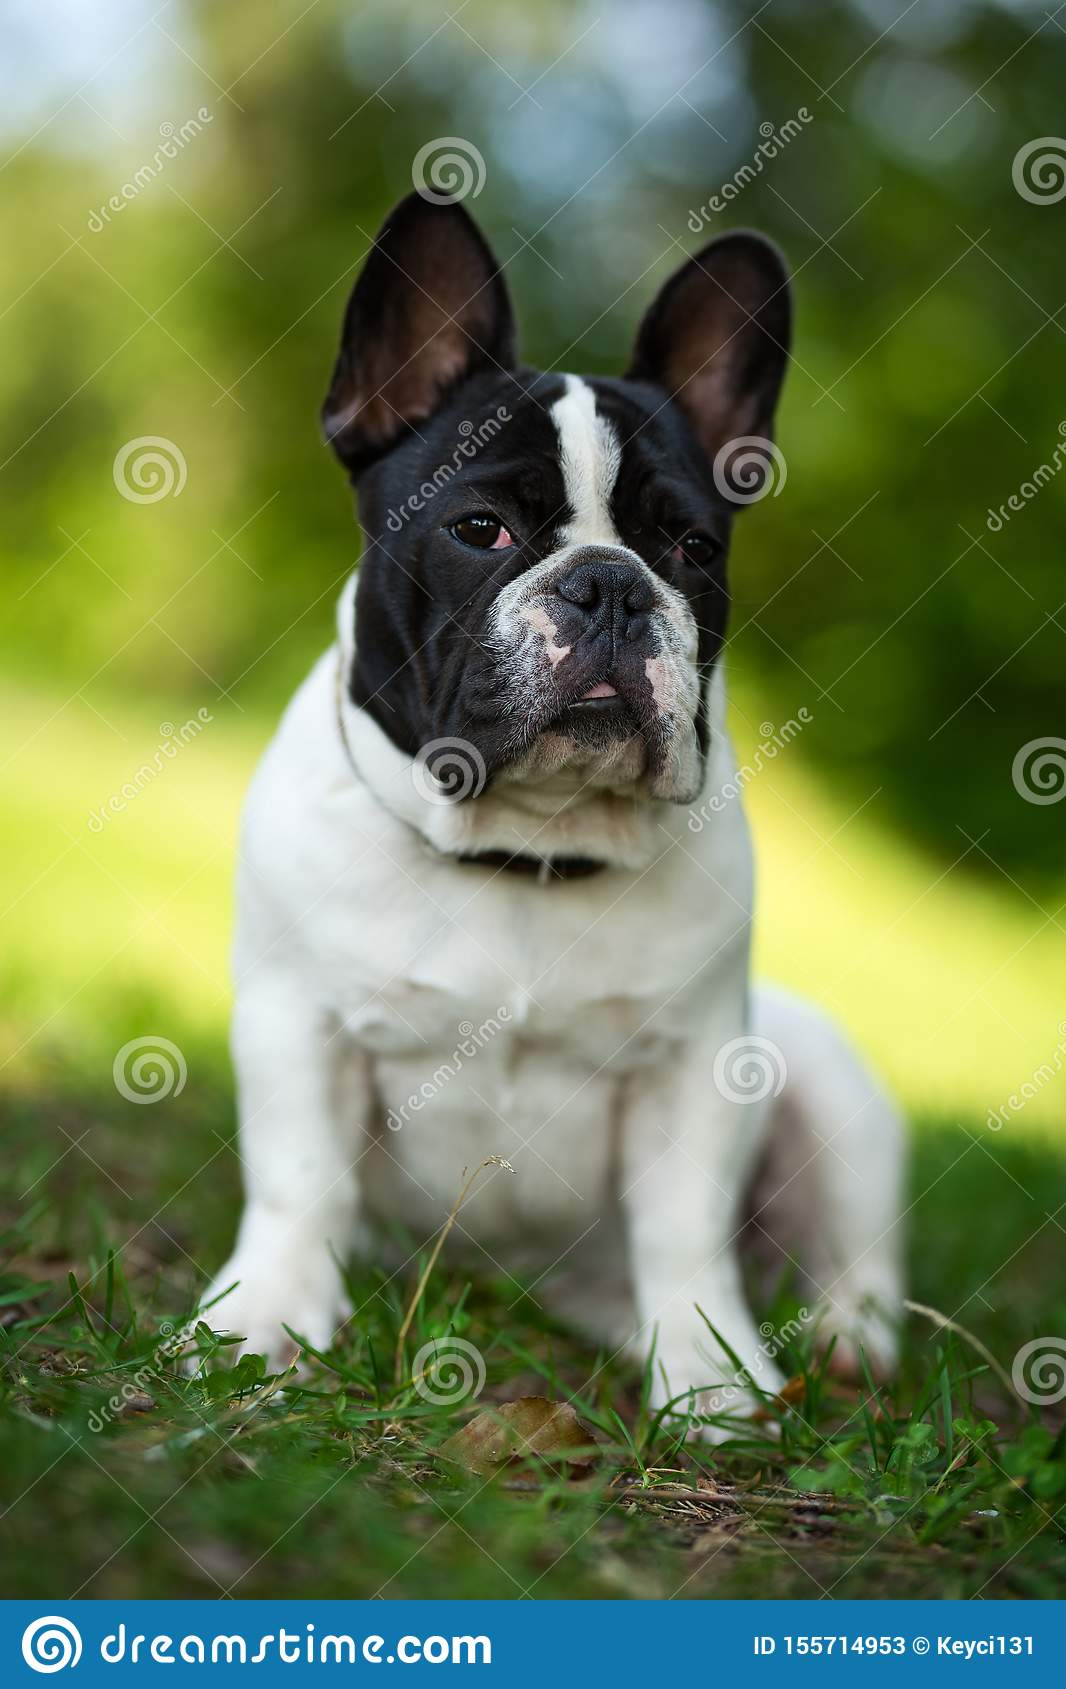 Cute Adorable Black And White French Bulldog Puppy In The Grass Stock Image Image Of Female Flowers 155714953